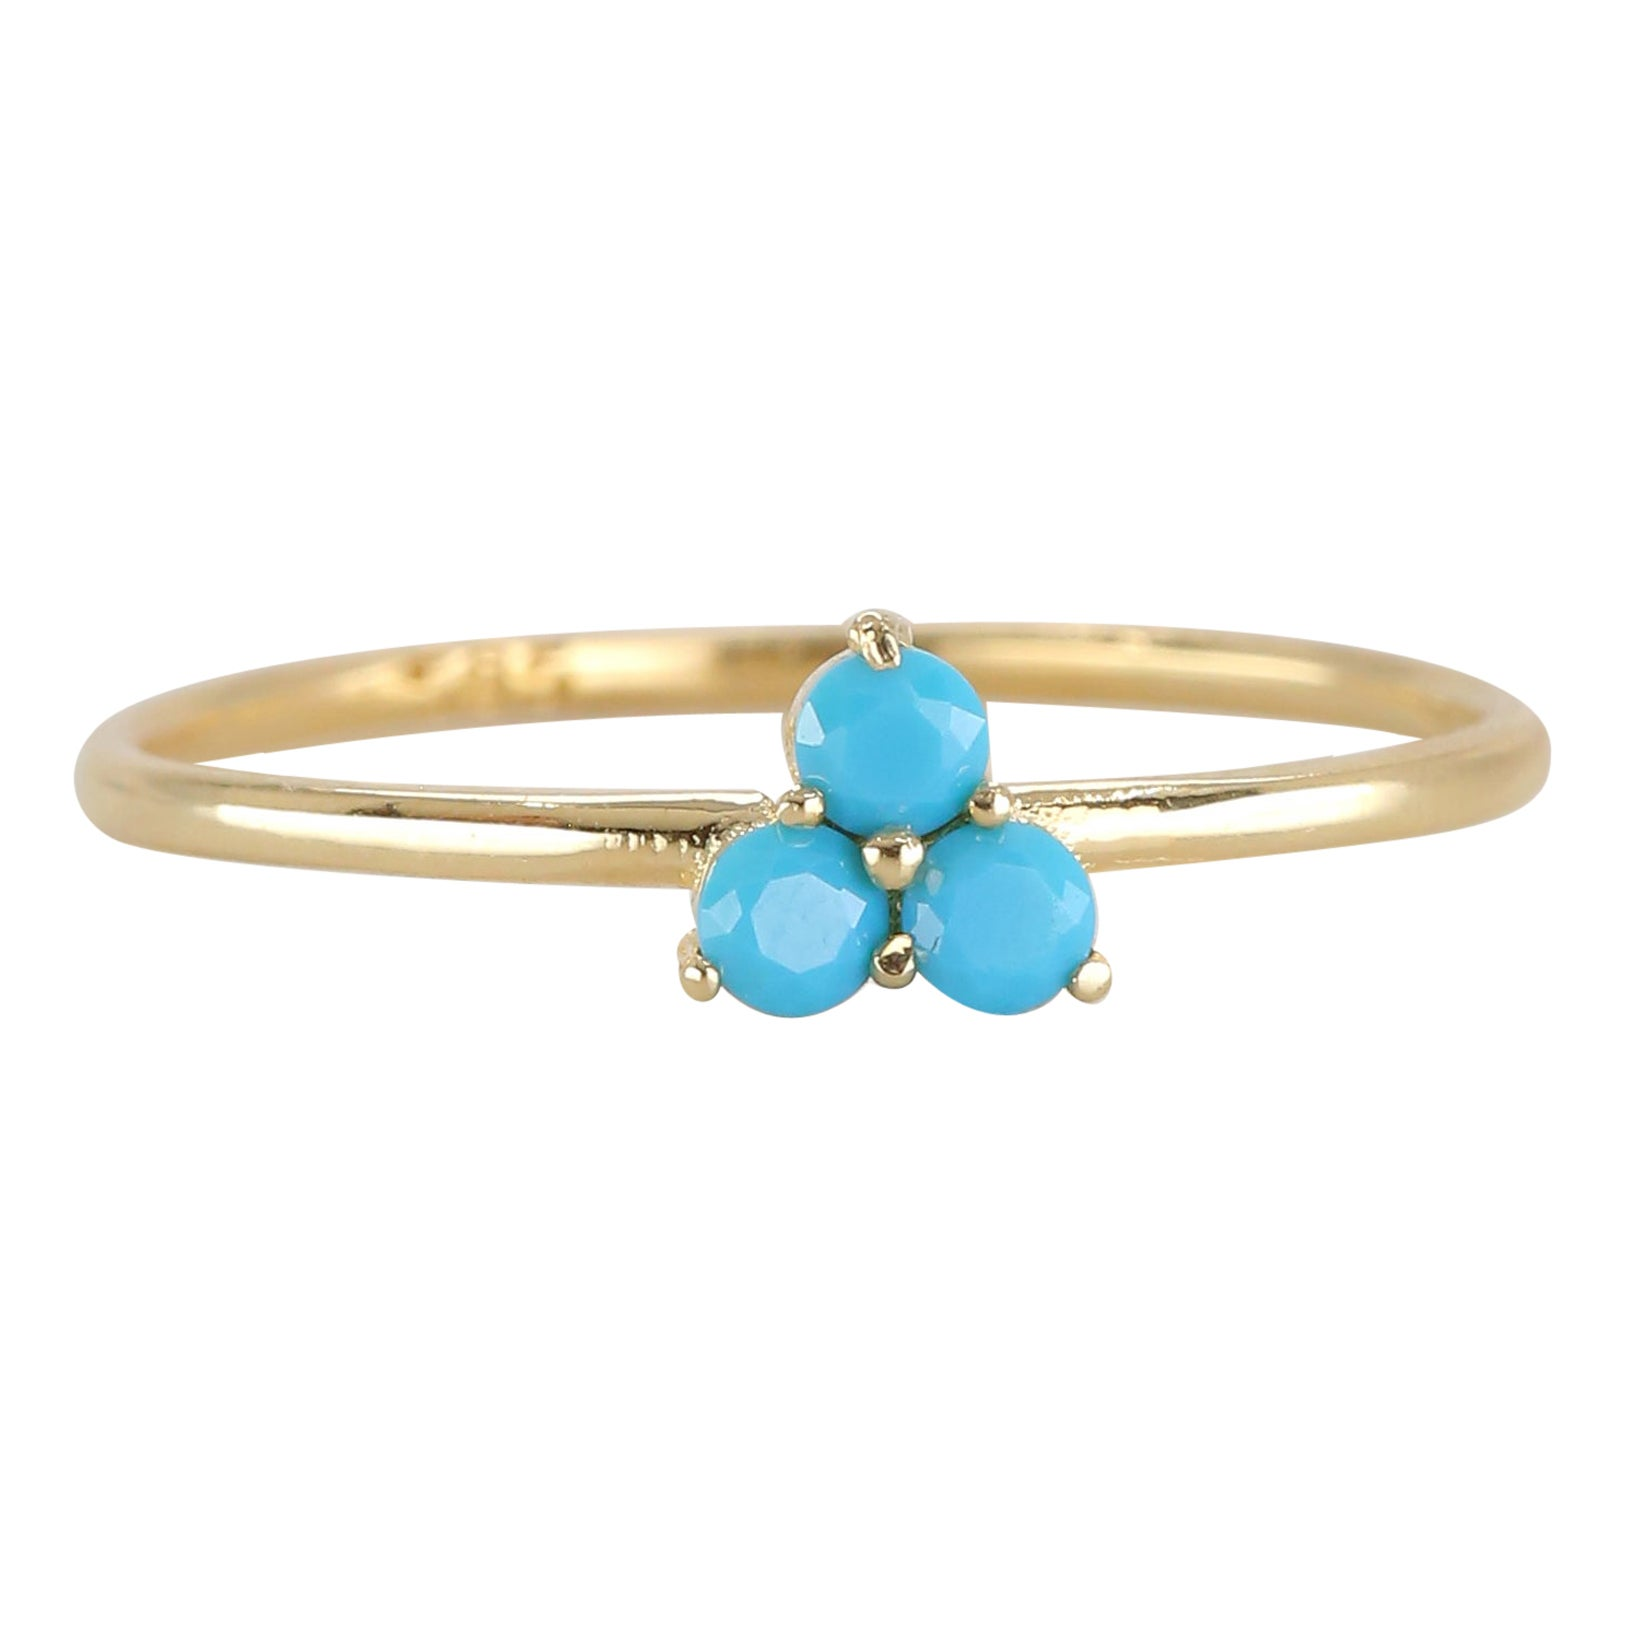 Dainty Turquoise Ring, 14K Dainty Gold Turquoise Ring, Gold Turquoise Ring